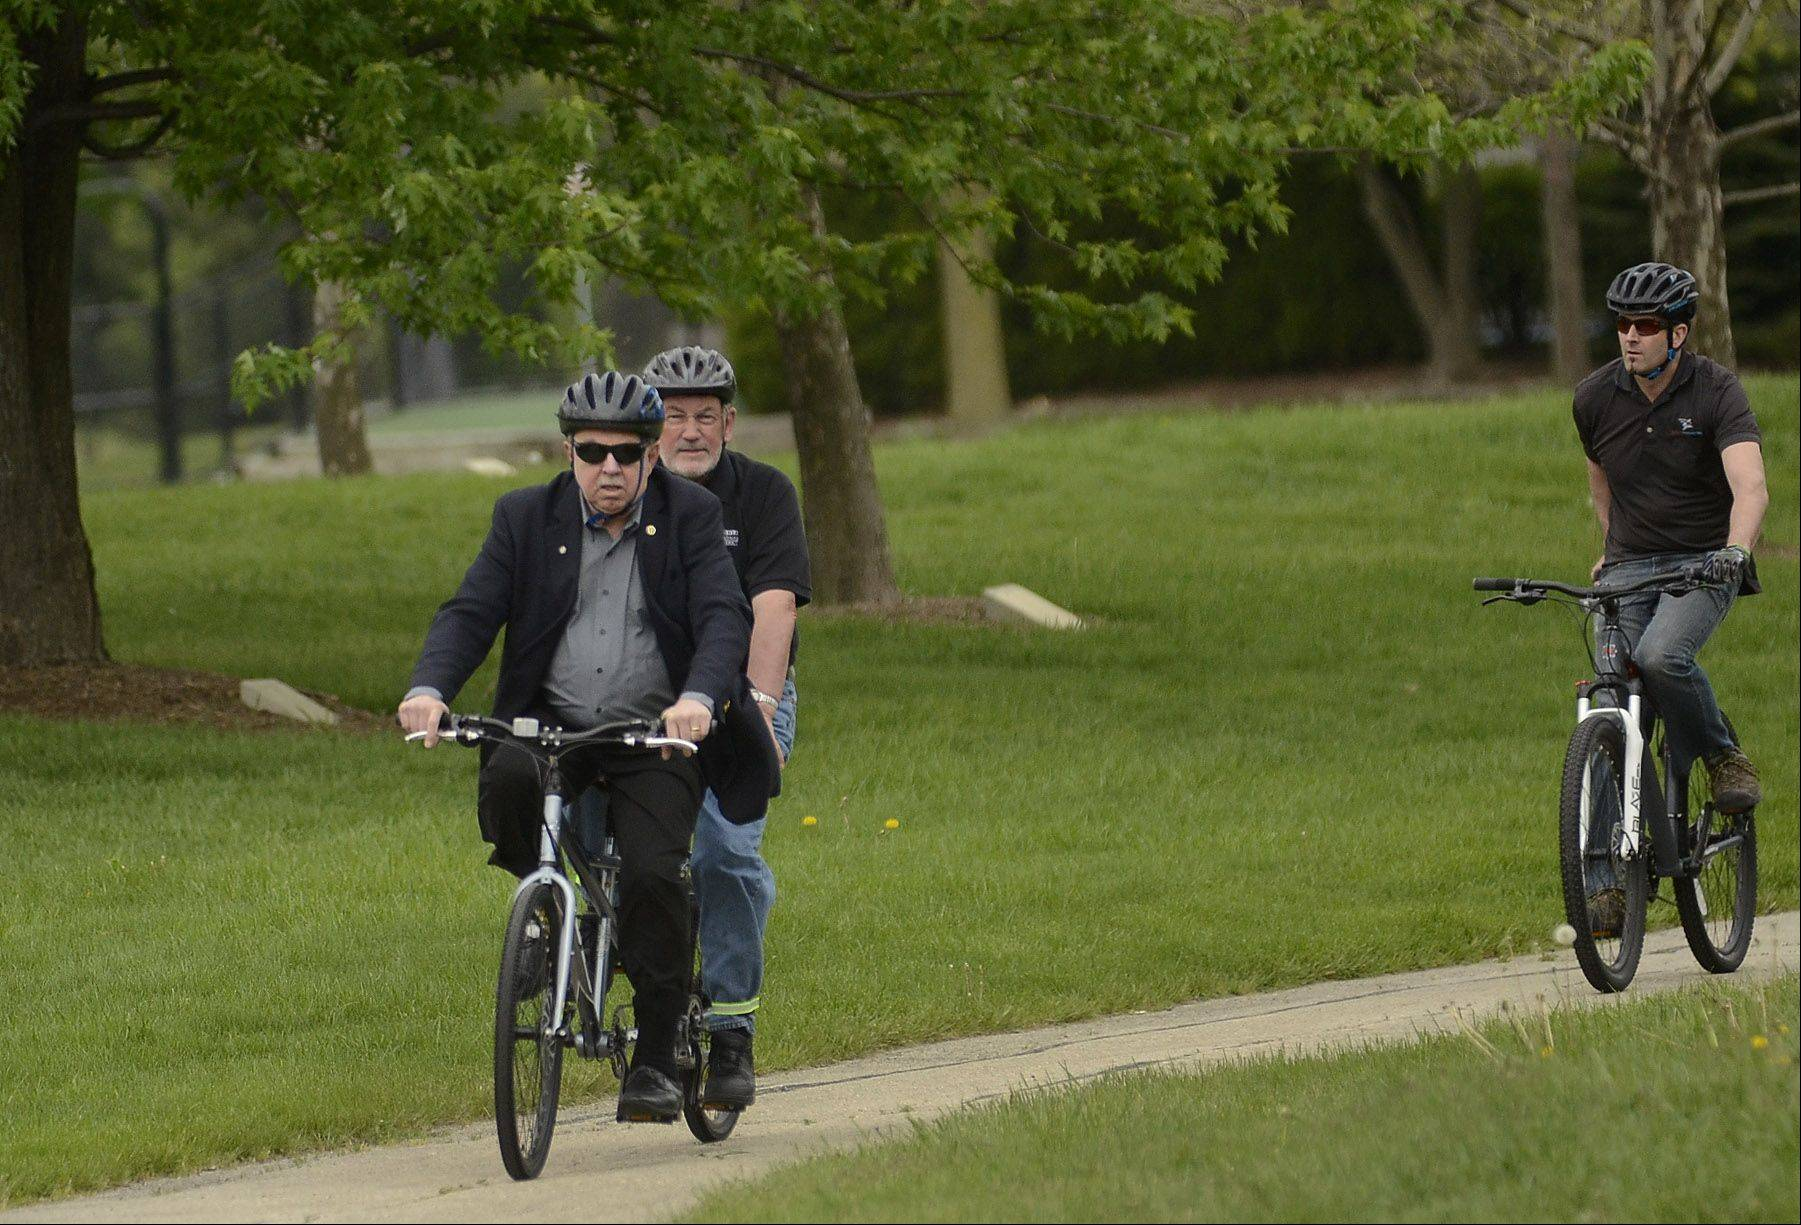 Schaumburg Mayor Al Larson and Park District Commissioner Bob Schmidt make their way to the village hall as they lead a bike ride from the Meineke Recreation Center to the village hall to commemorate Bike to Work Week.